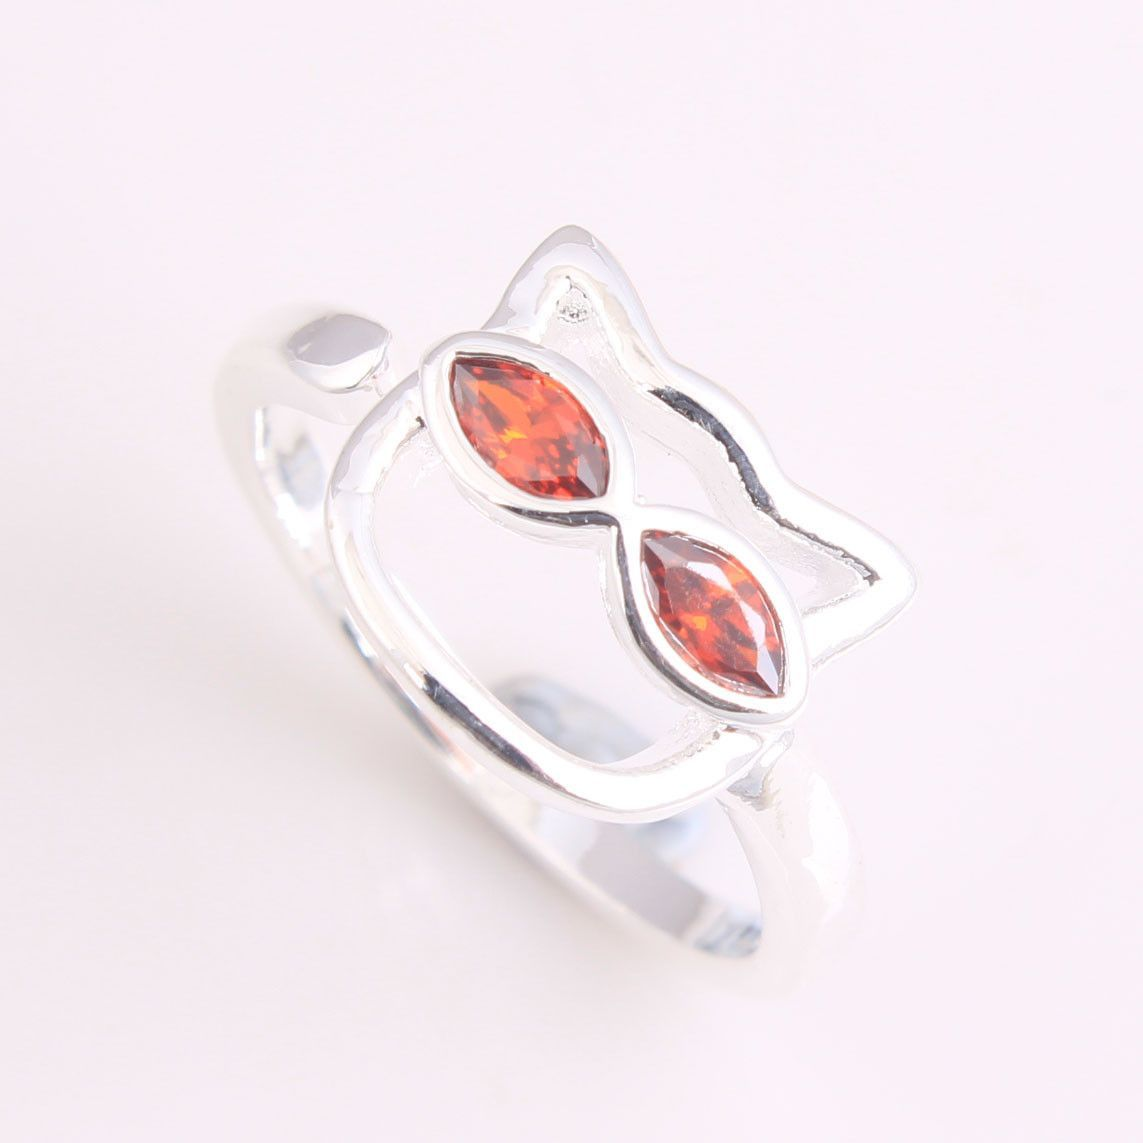 2016 cat with glass eye silver ring paved red zircon for women free drop shipping vintage jewelry for wedding gift wholesale